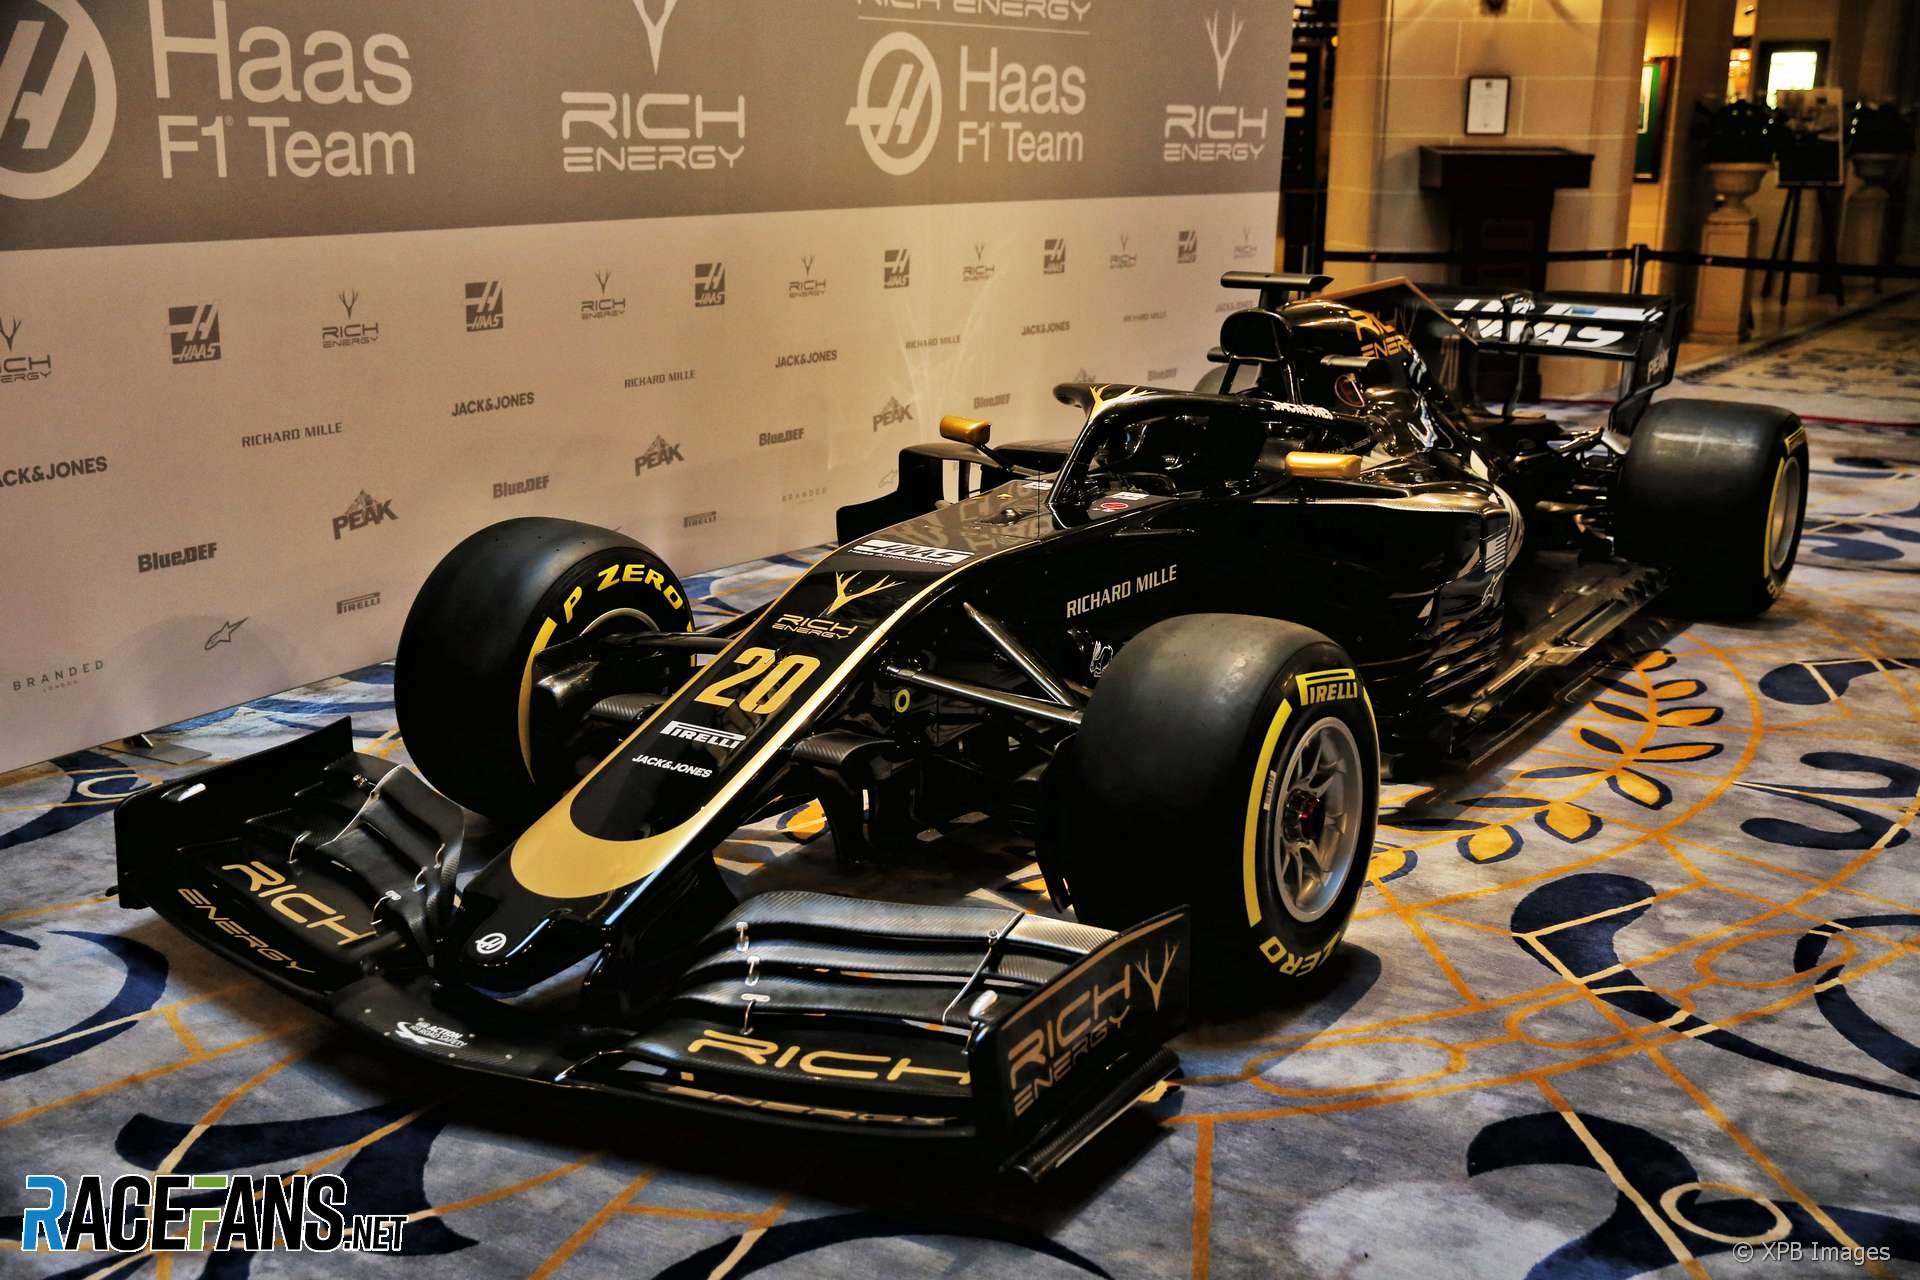 Haas Reveals New Livery For 2019 F1 Season In London Racefans